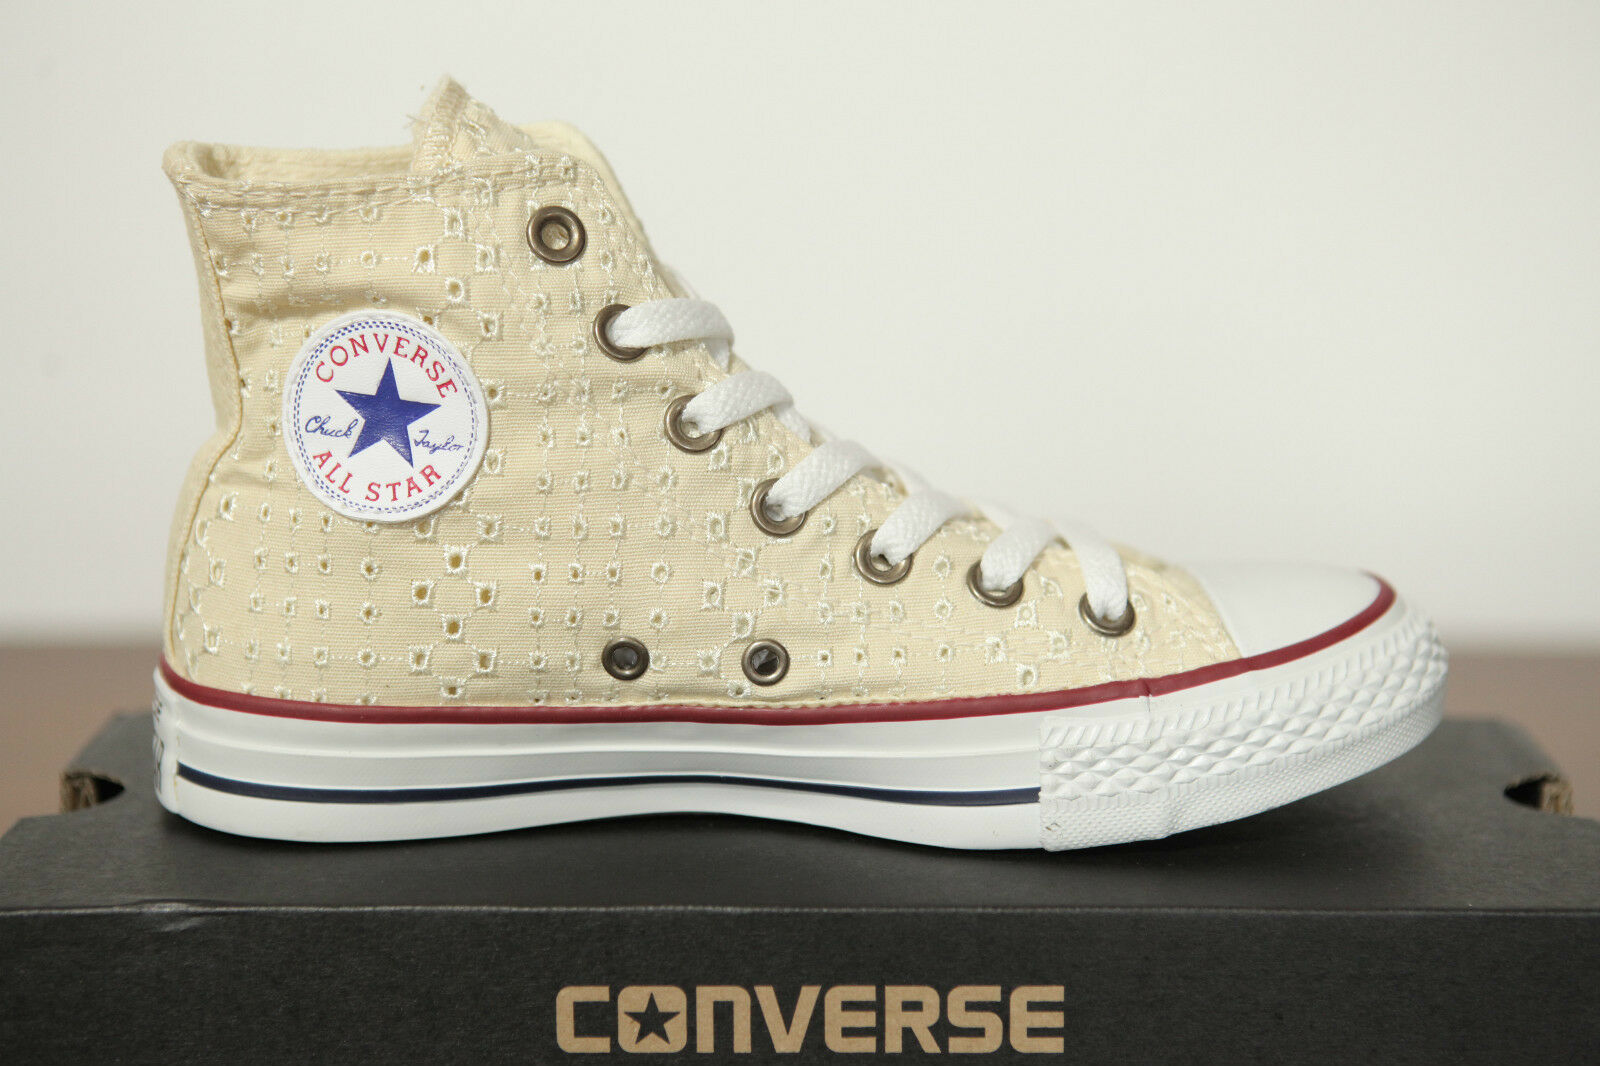 NUEVO ALL STAR CONVERSE CHUCKS HI Ojal 542538c Zapatillas HIGH TOP T. 37GB 4,5